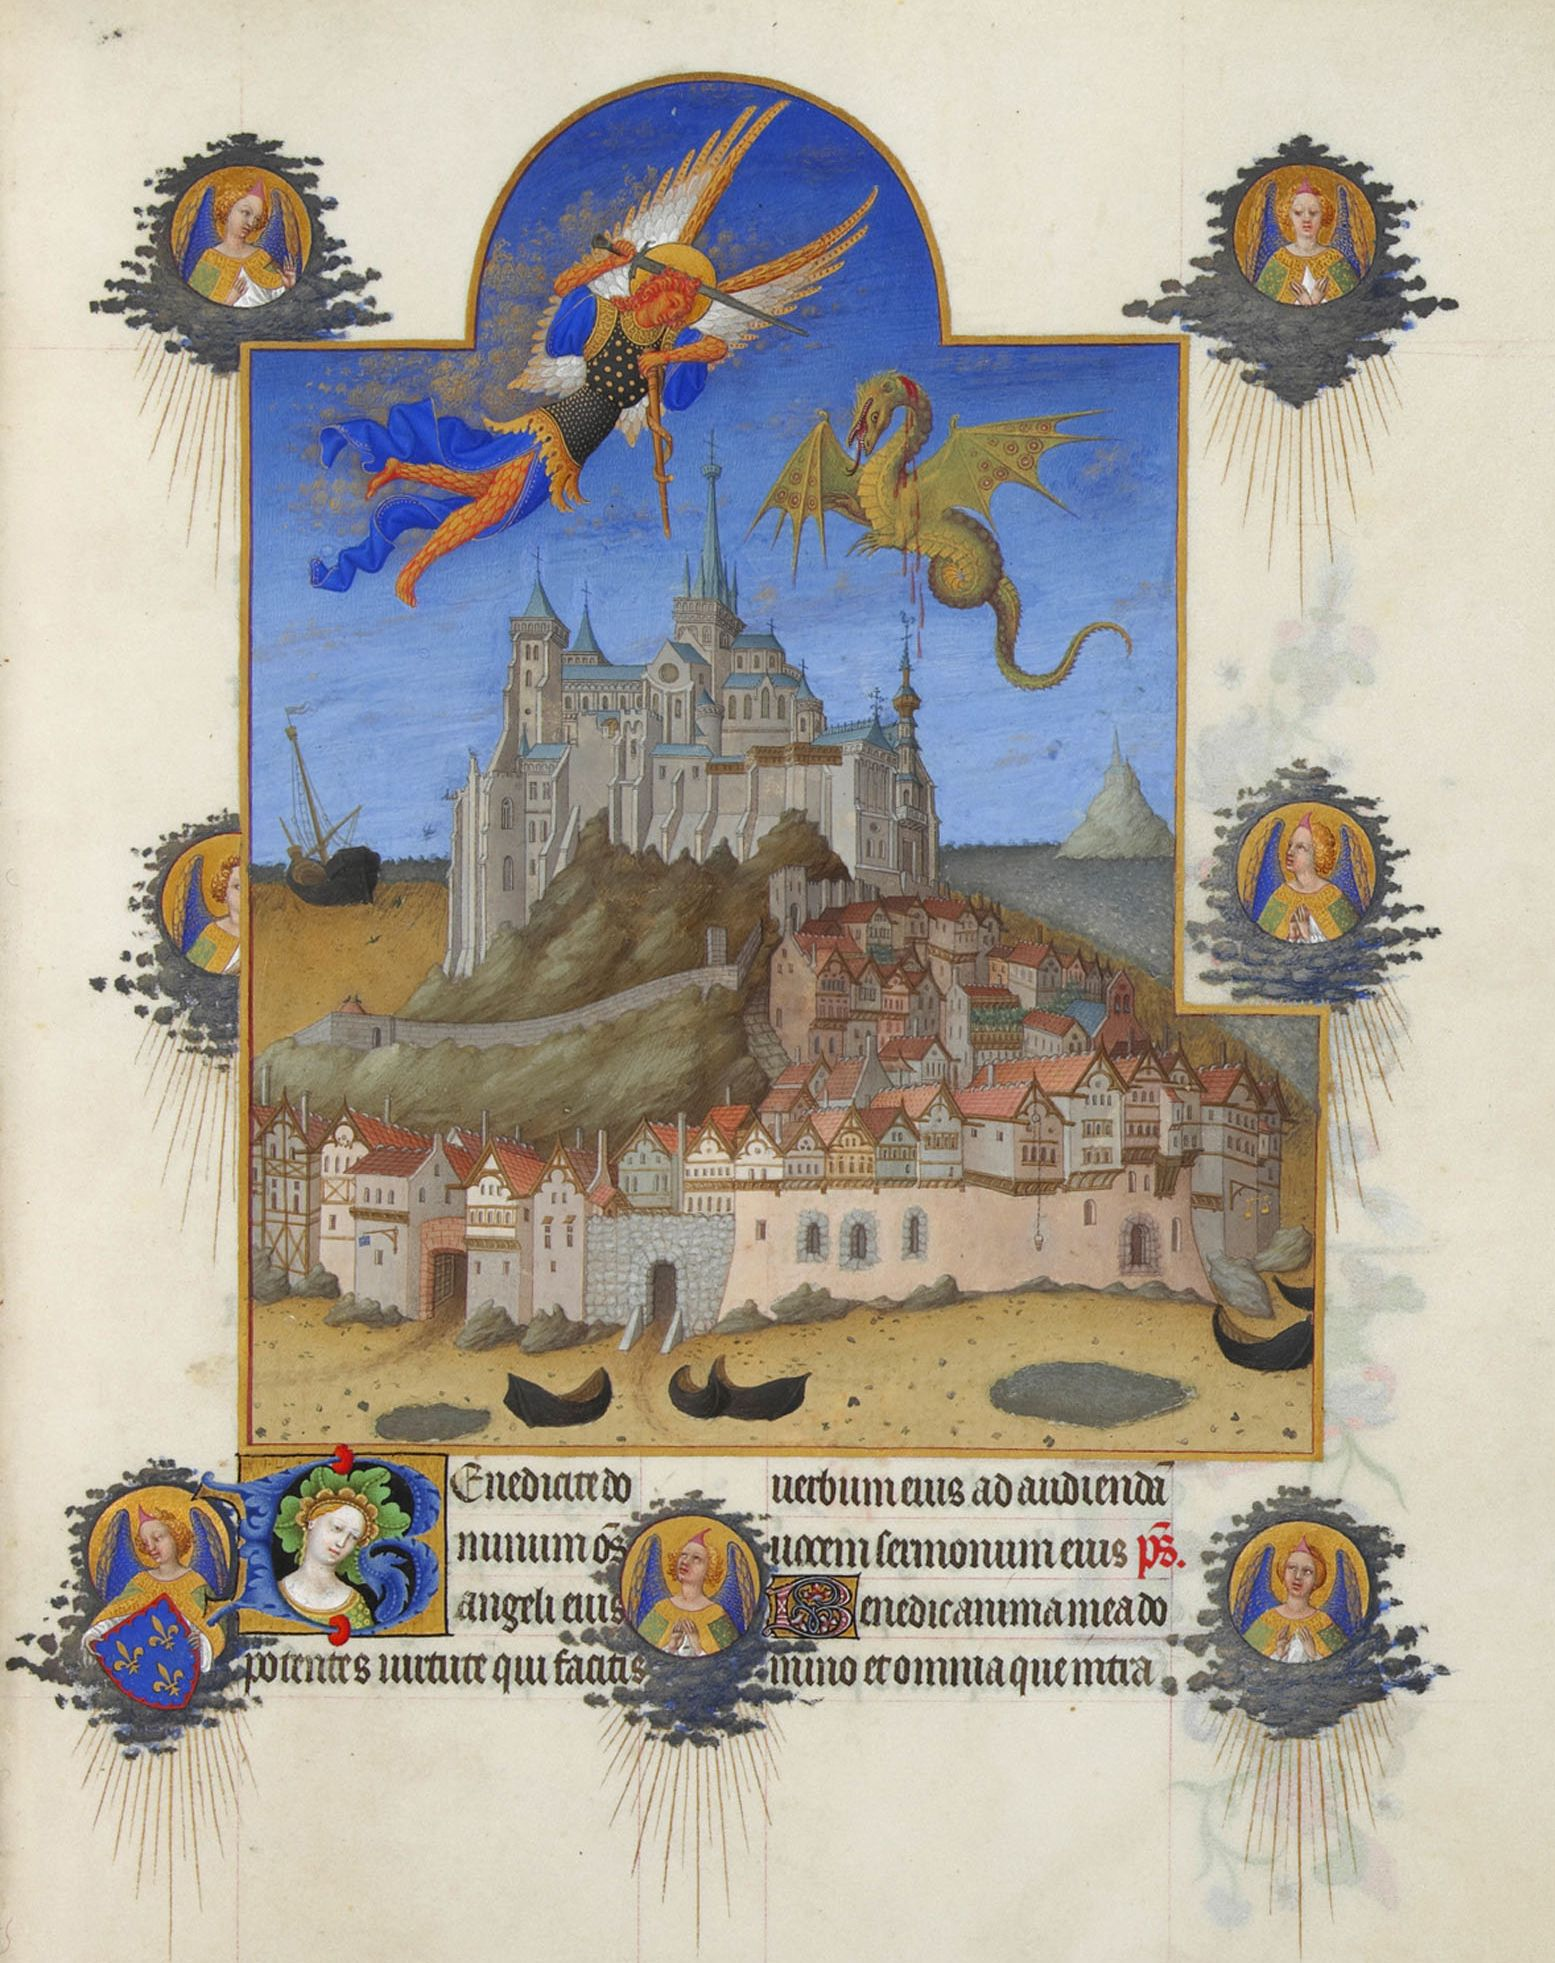 Battle of the Archangel Michael and the dragon. Thumbnail of the Magnificent Book of Hours Duc de Berry.